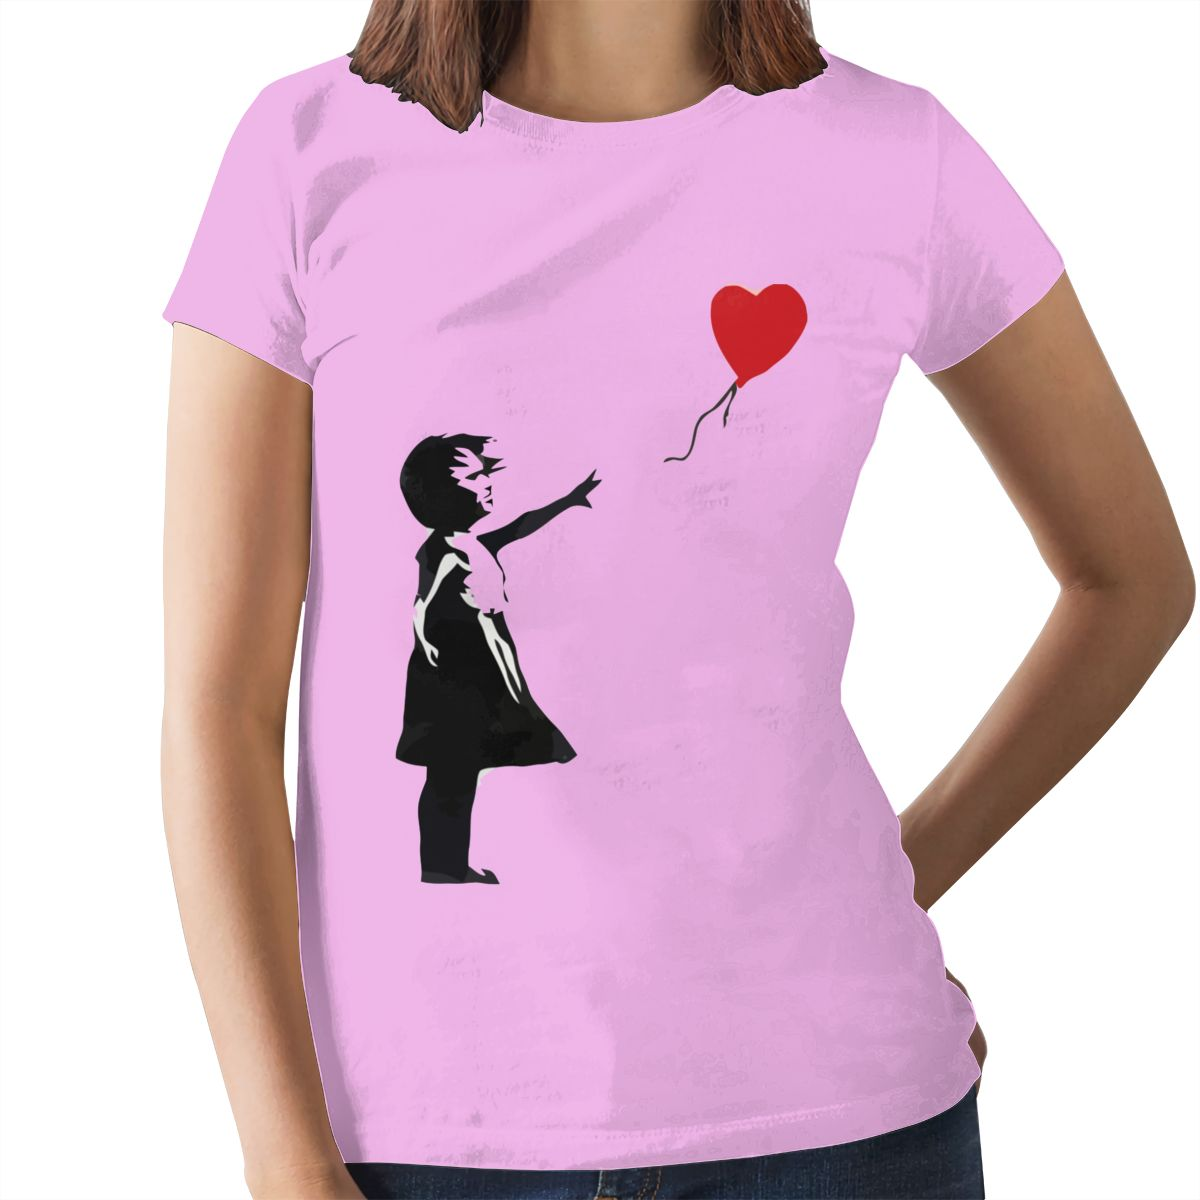 Heart Love T-Shirt Banksy Girl With Balloon T Shirt Trendy Purple Women tshirt Cotton Graphic Ladies Tee Shirt 9